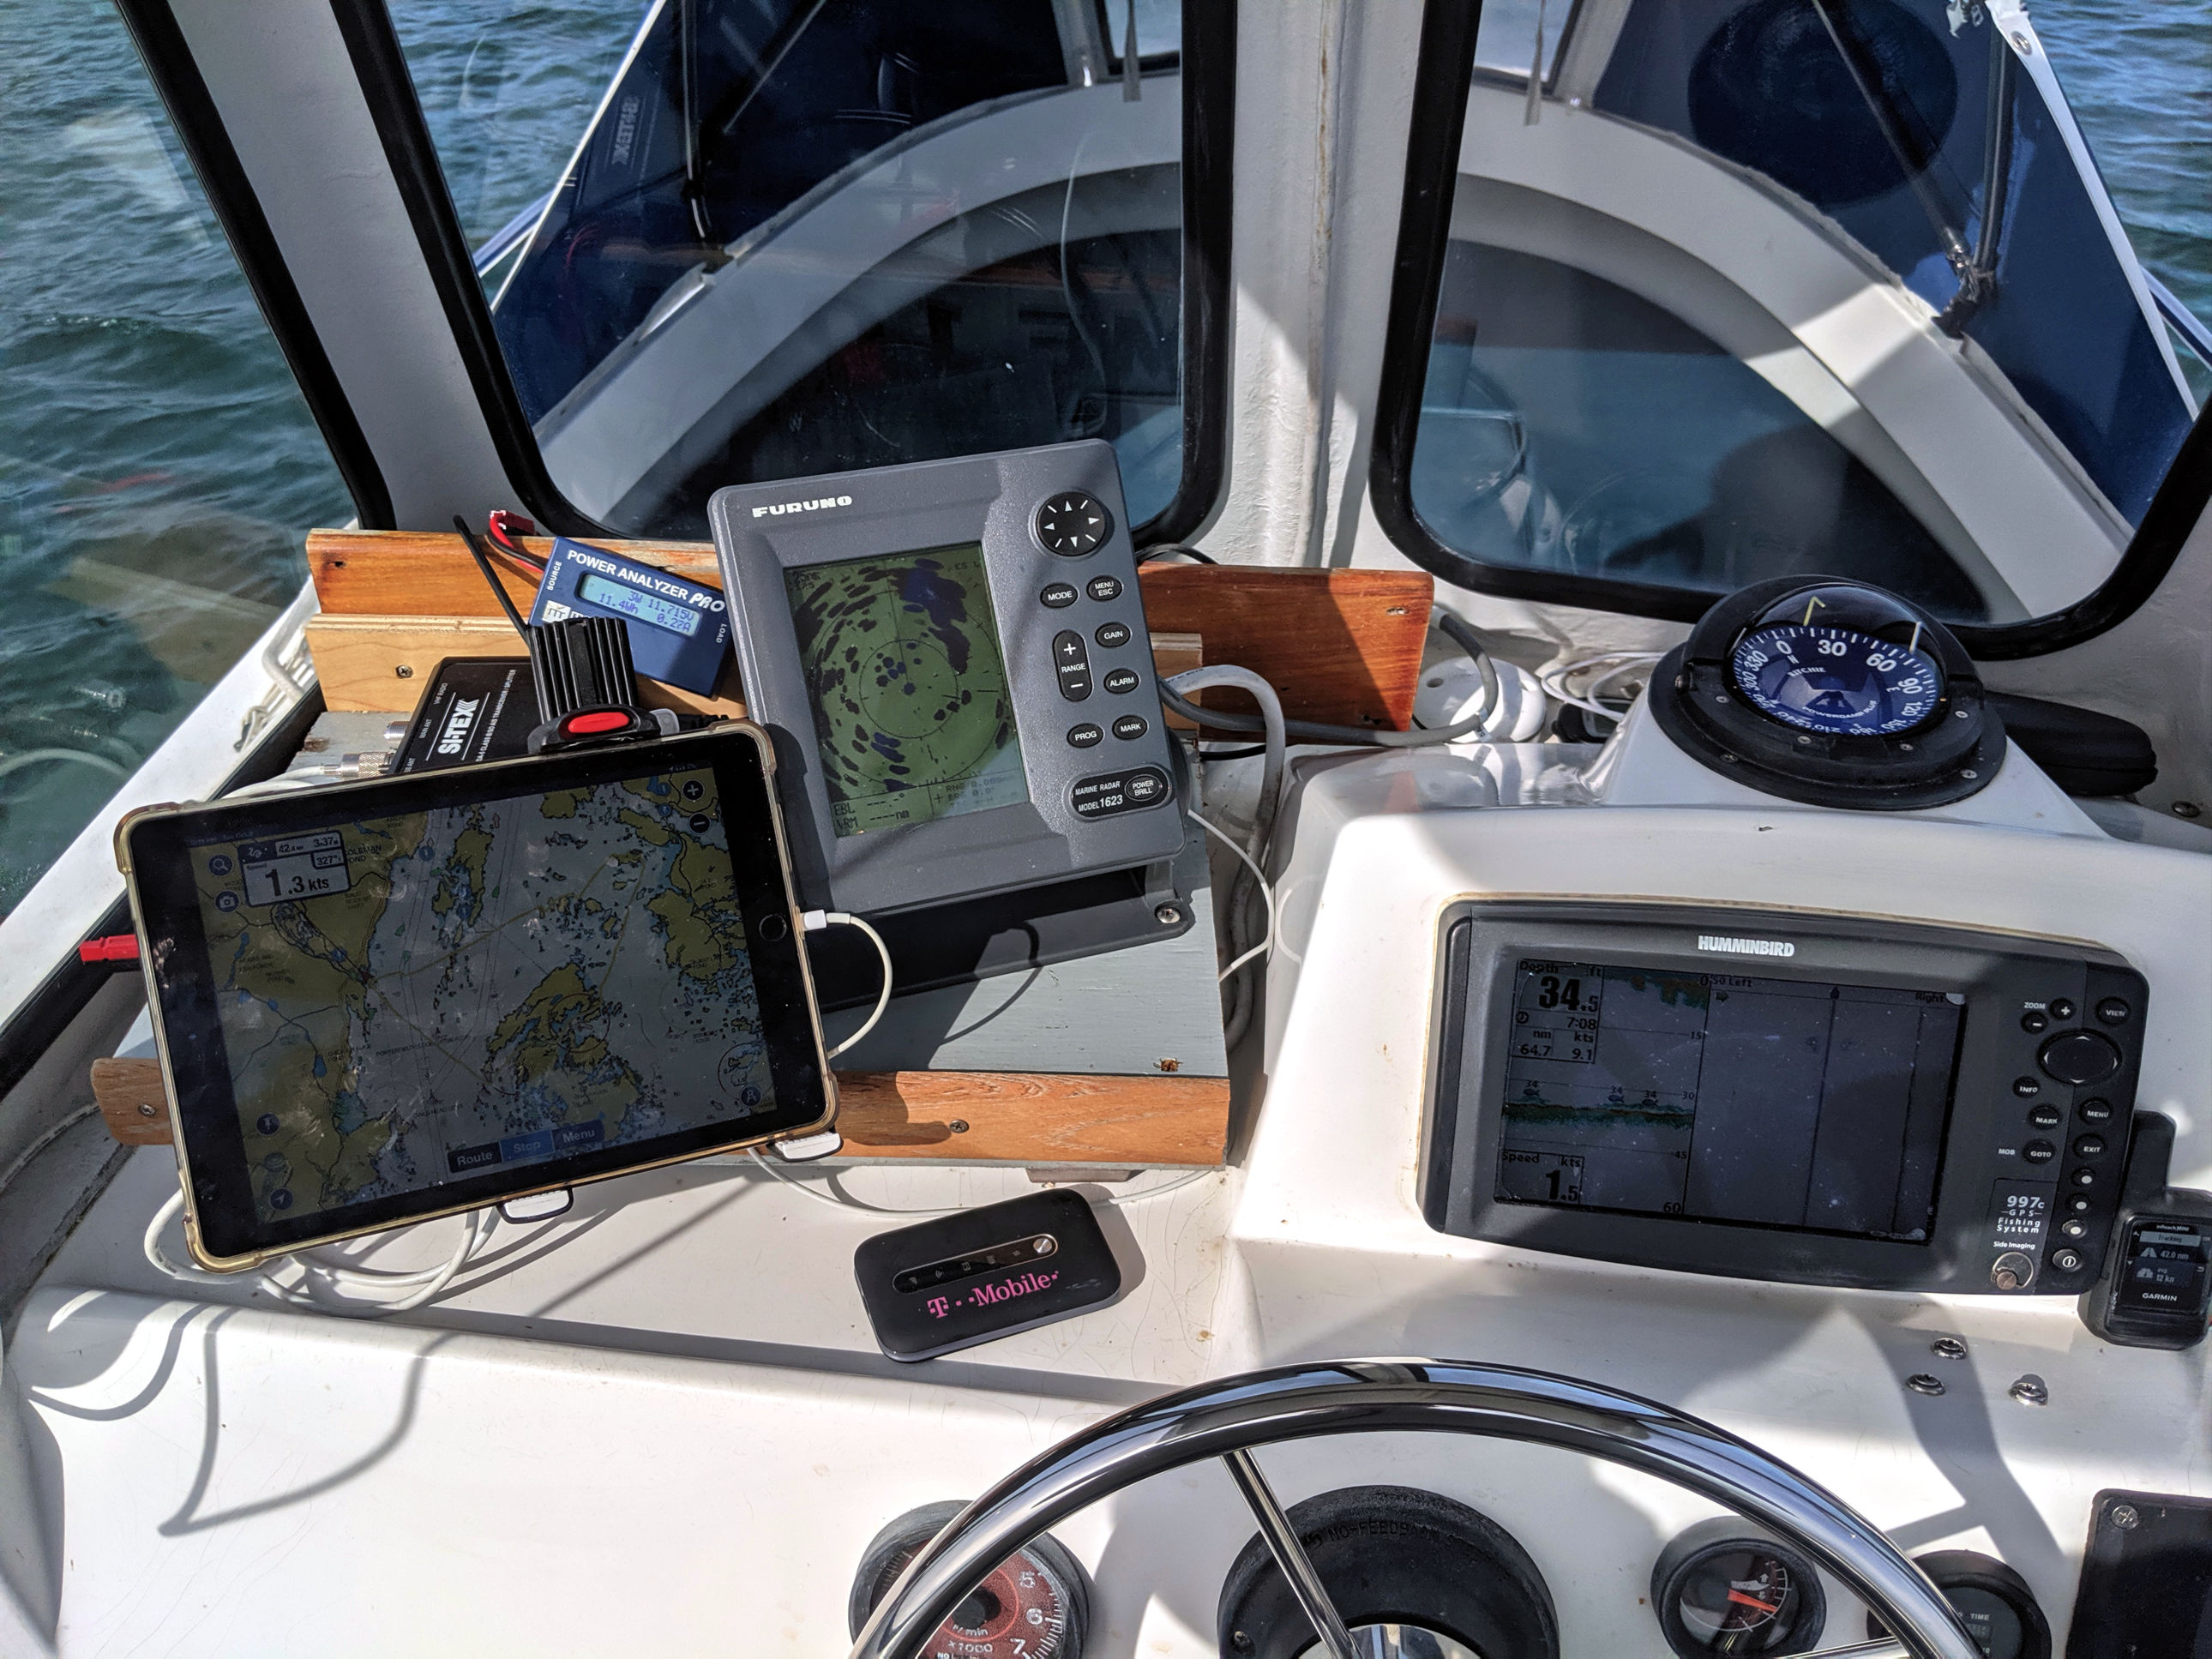 Testing Navionics Boating, Sitex MDA Class B/SO AIS, TMobile on 10/8/19